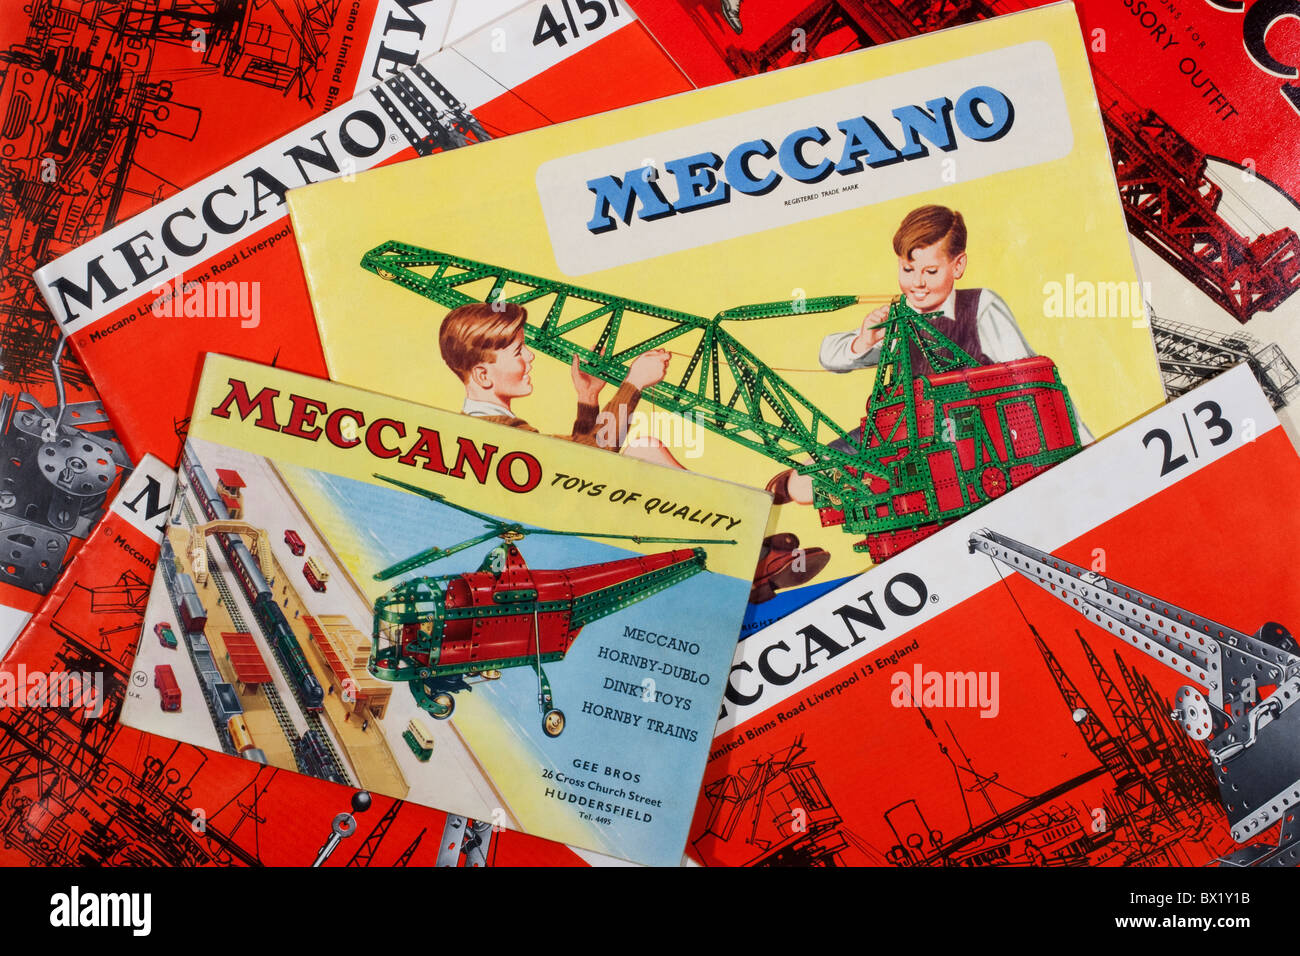 Meccano instruction and accesory outfit booklets used to build working models and mechanical devices invented by Stock Photo